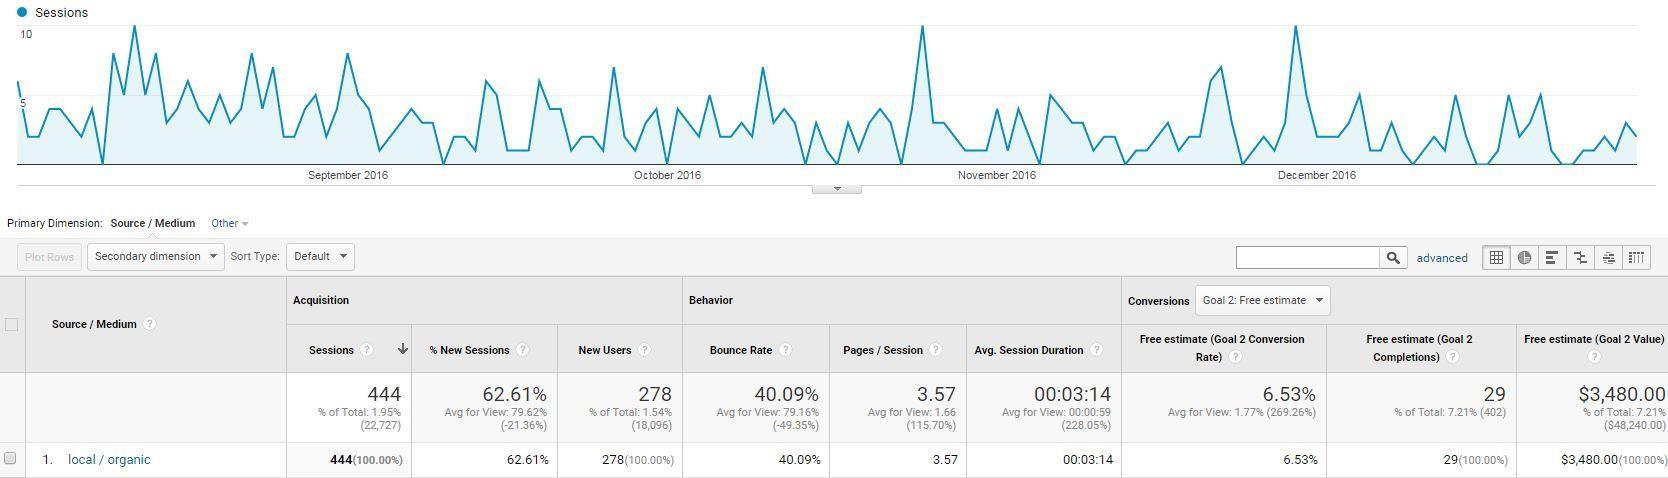 Google My Business UTM tracking URL source and medium set as displaying